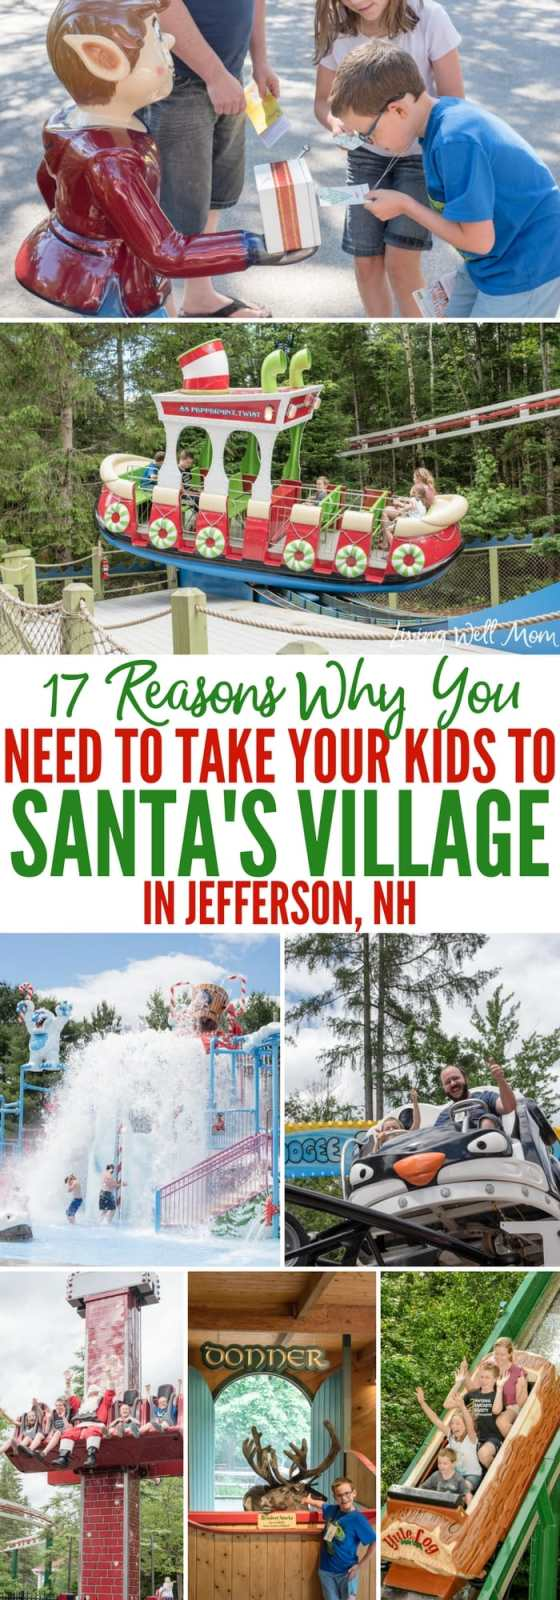 17 Reasons Why You Need to Take Your Family to Santa's Village in Jefferson, NH - from meeting Santa himself to feeding his reindeer, fun roller coasters and an awesome watermark, Santa's Village is an amazing family attraction the whole family will love!